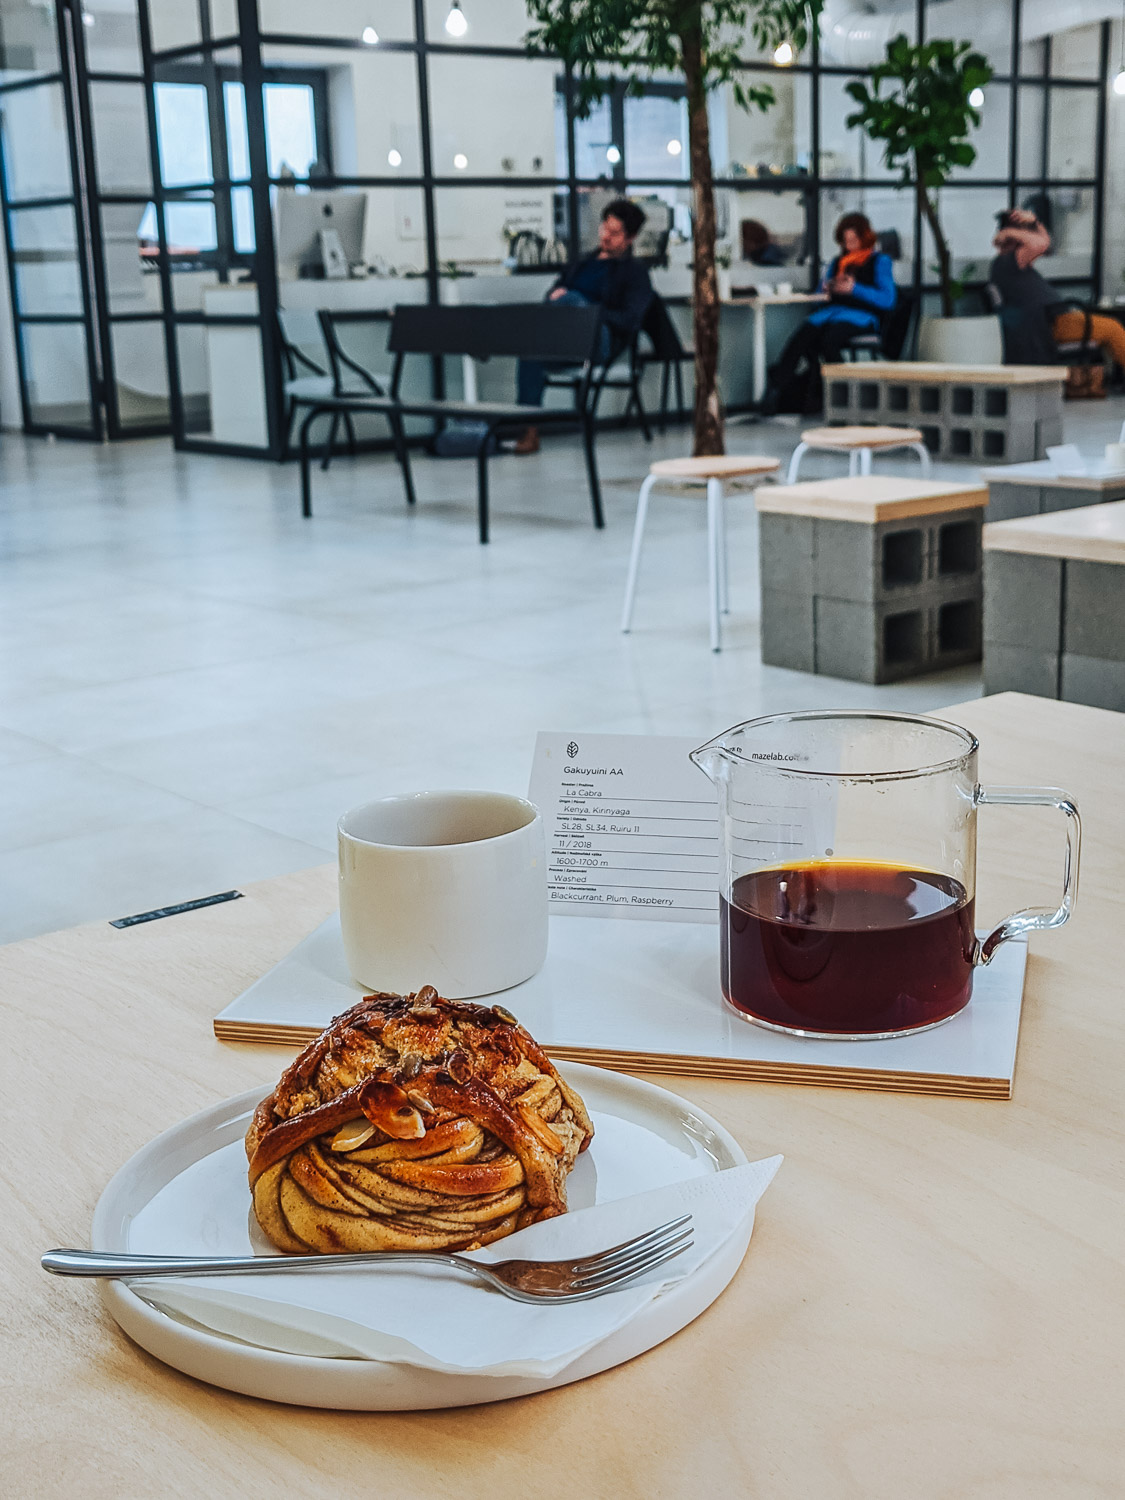 Cinnamon bun and speciality coffee pour over at Mazelab coffee shop in Prague